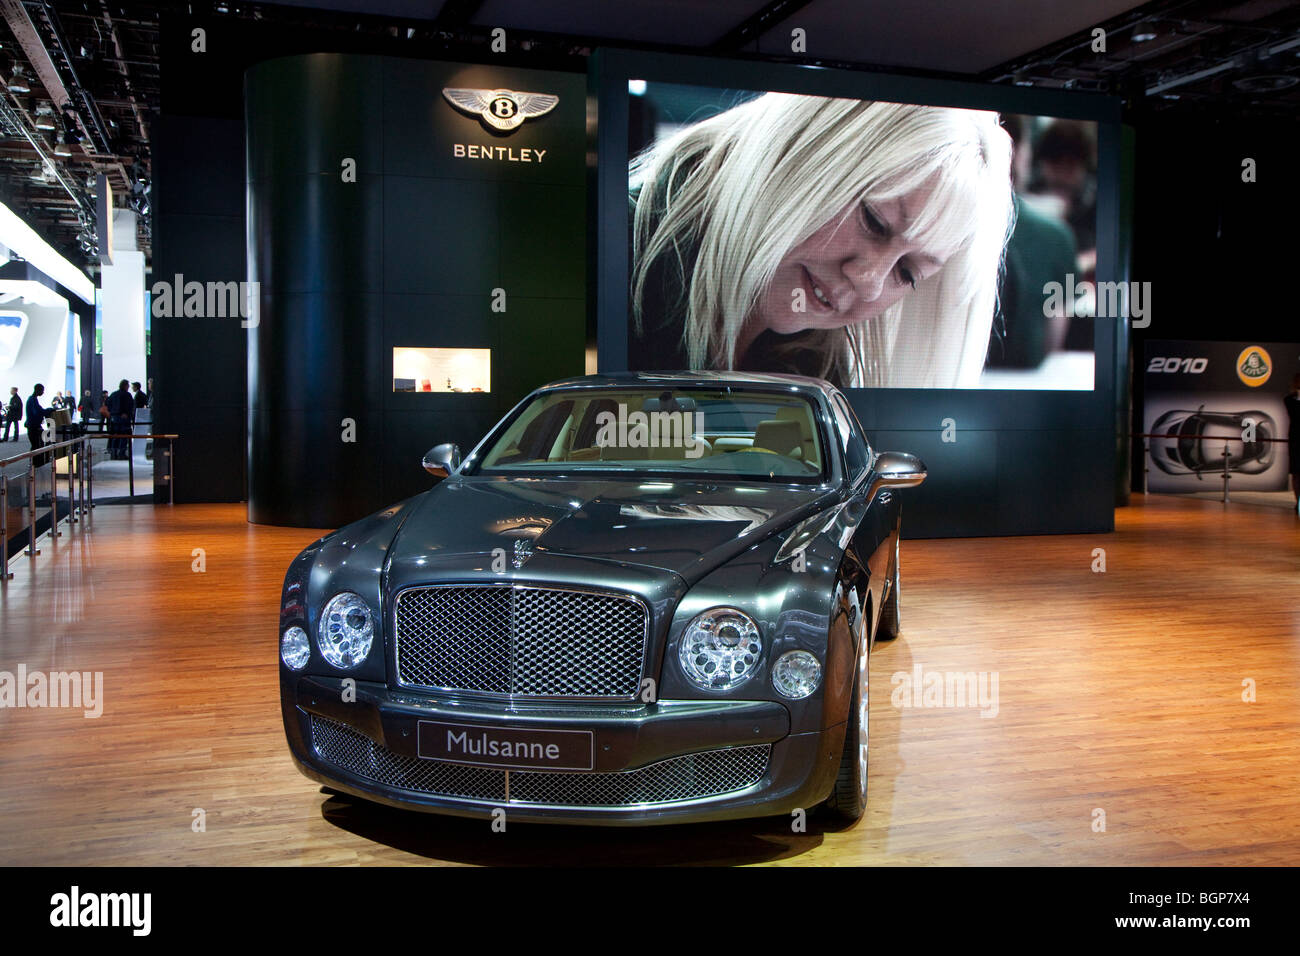 Bentley Mulsanne Stockbild